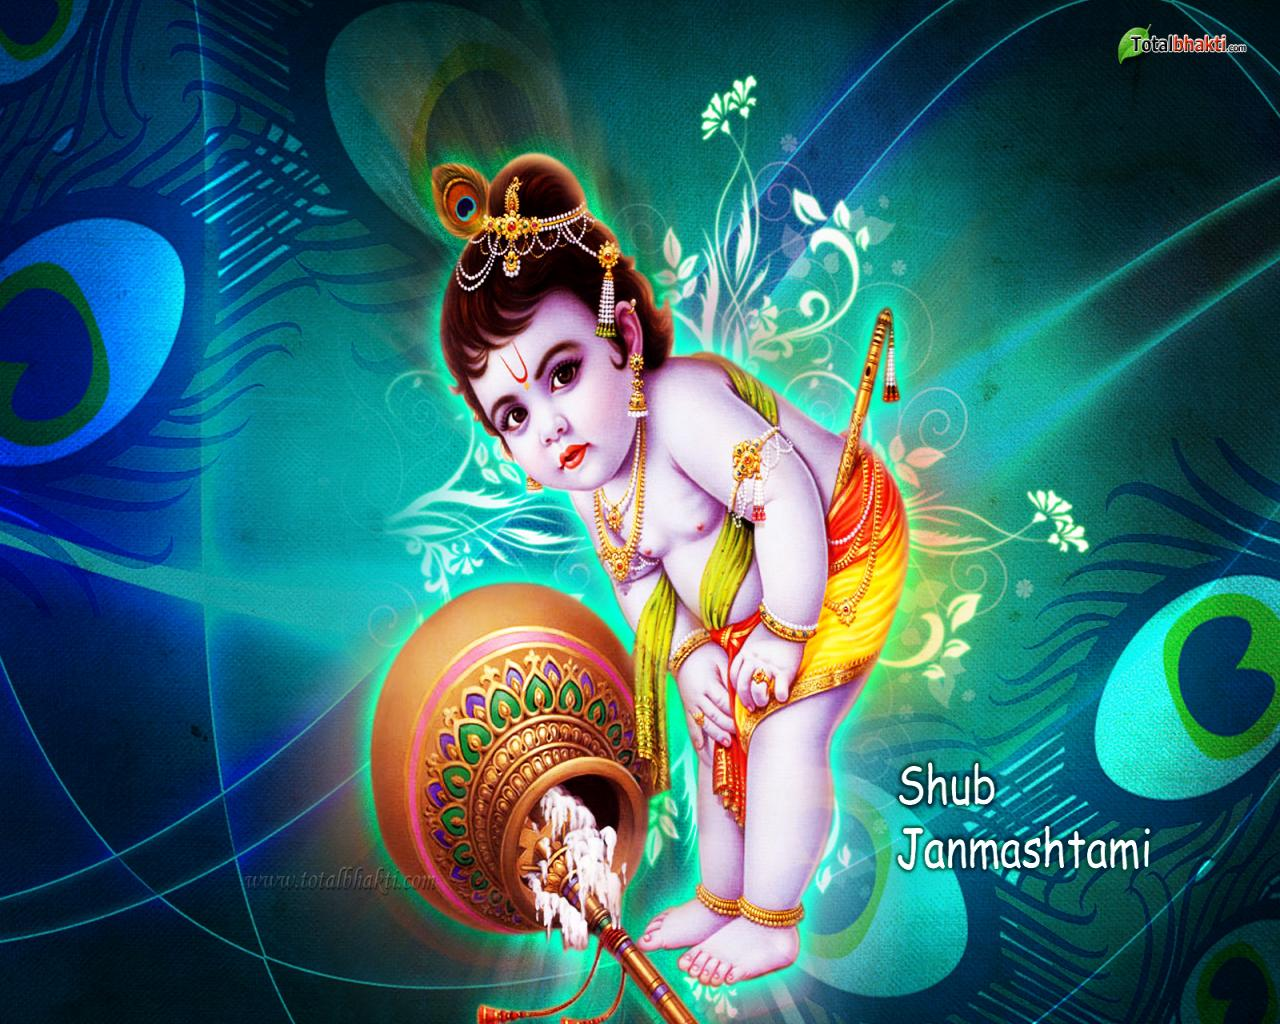 Web Design Company In Udaipur Lord Krishna Wallpapers For Desktop